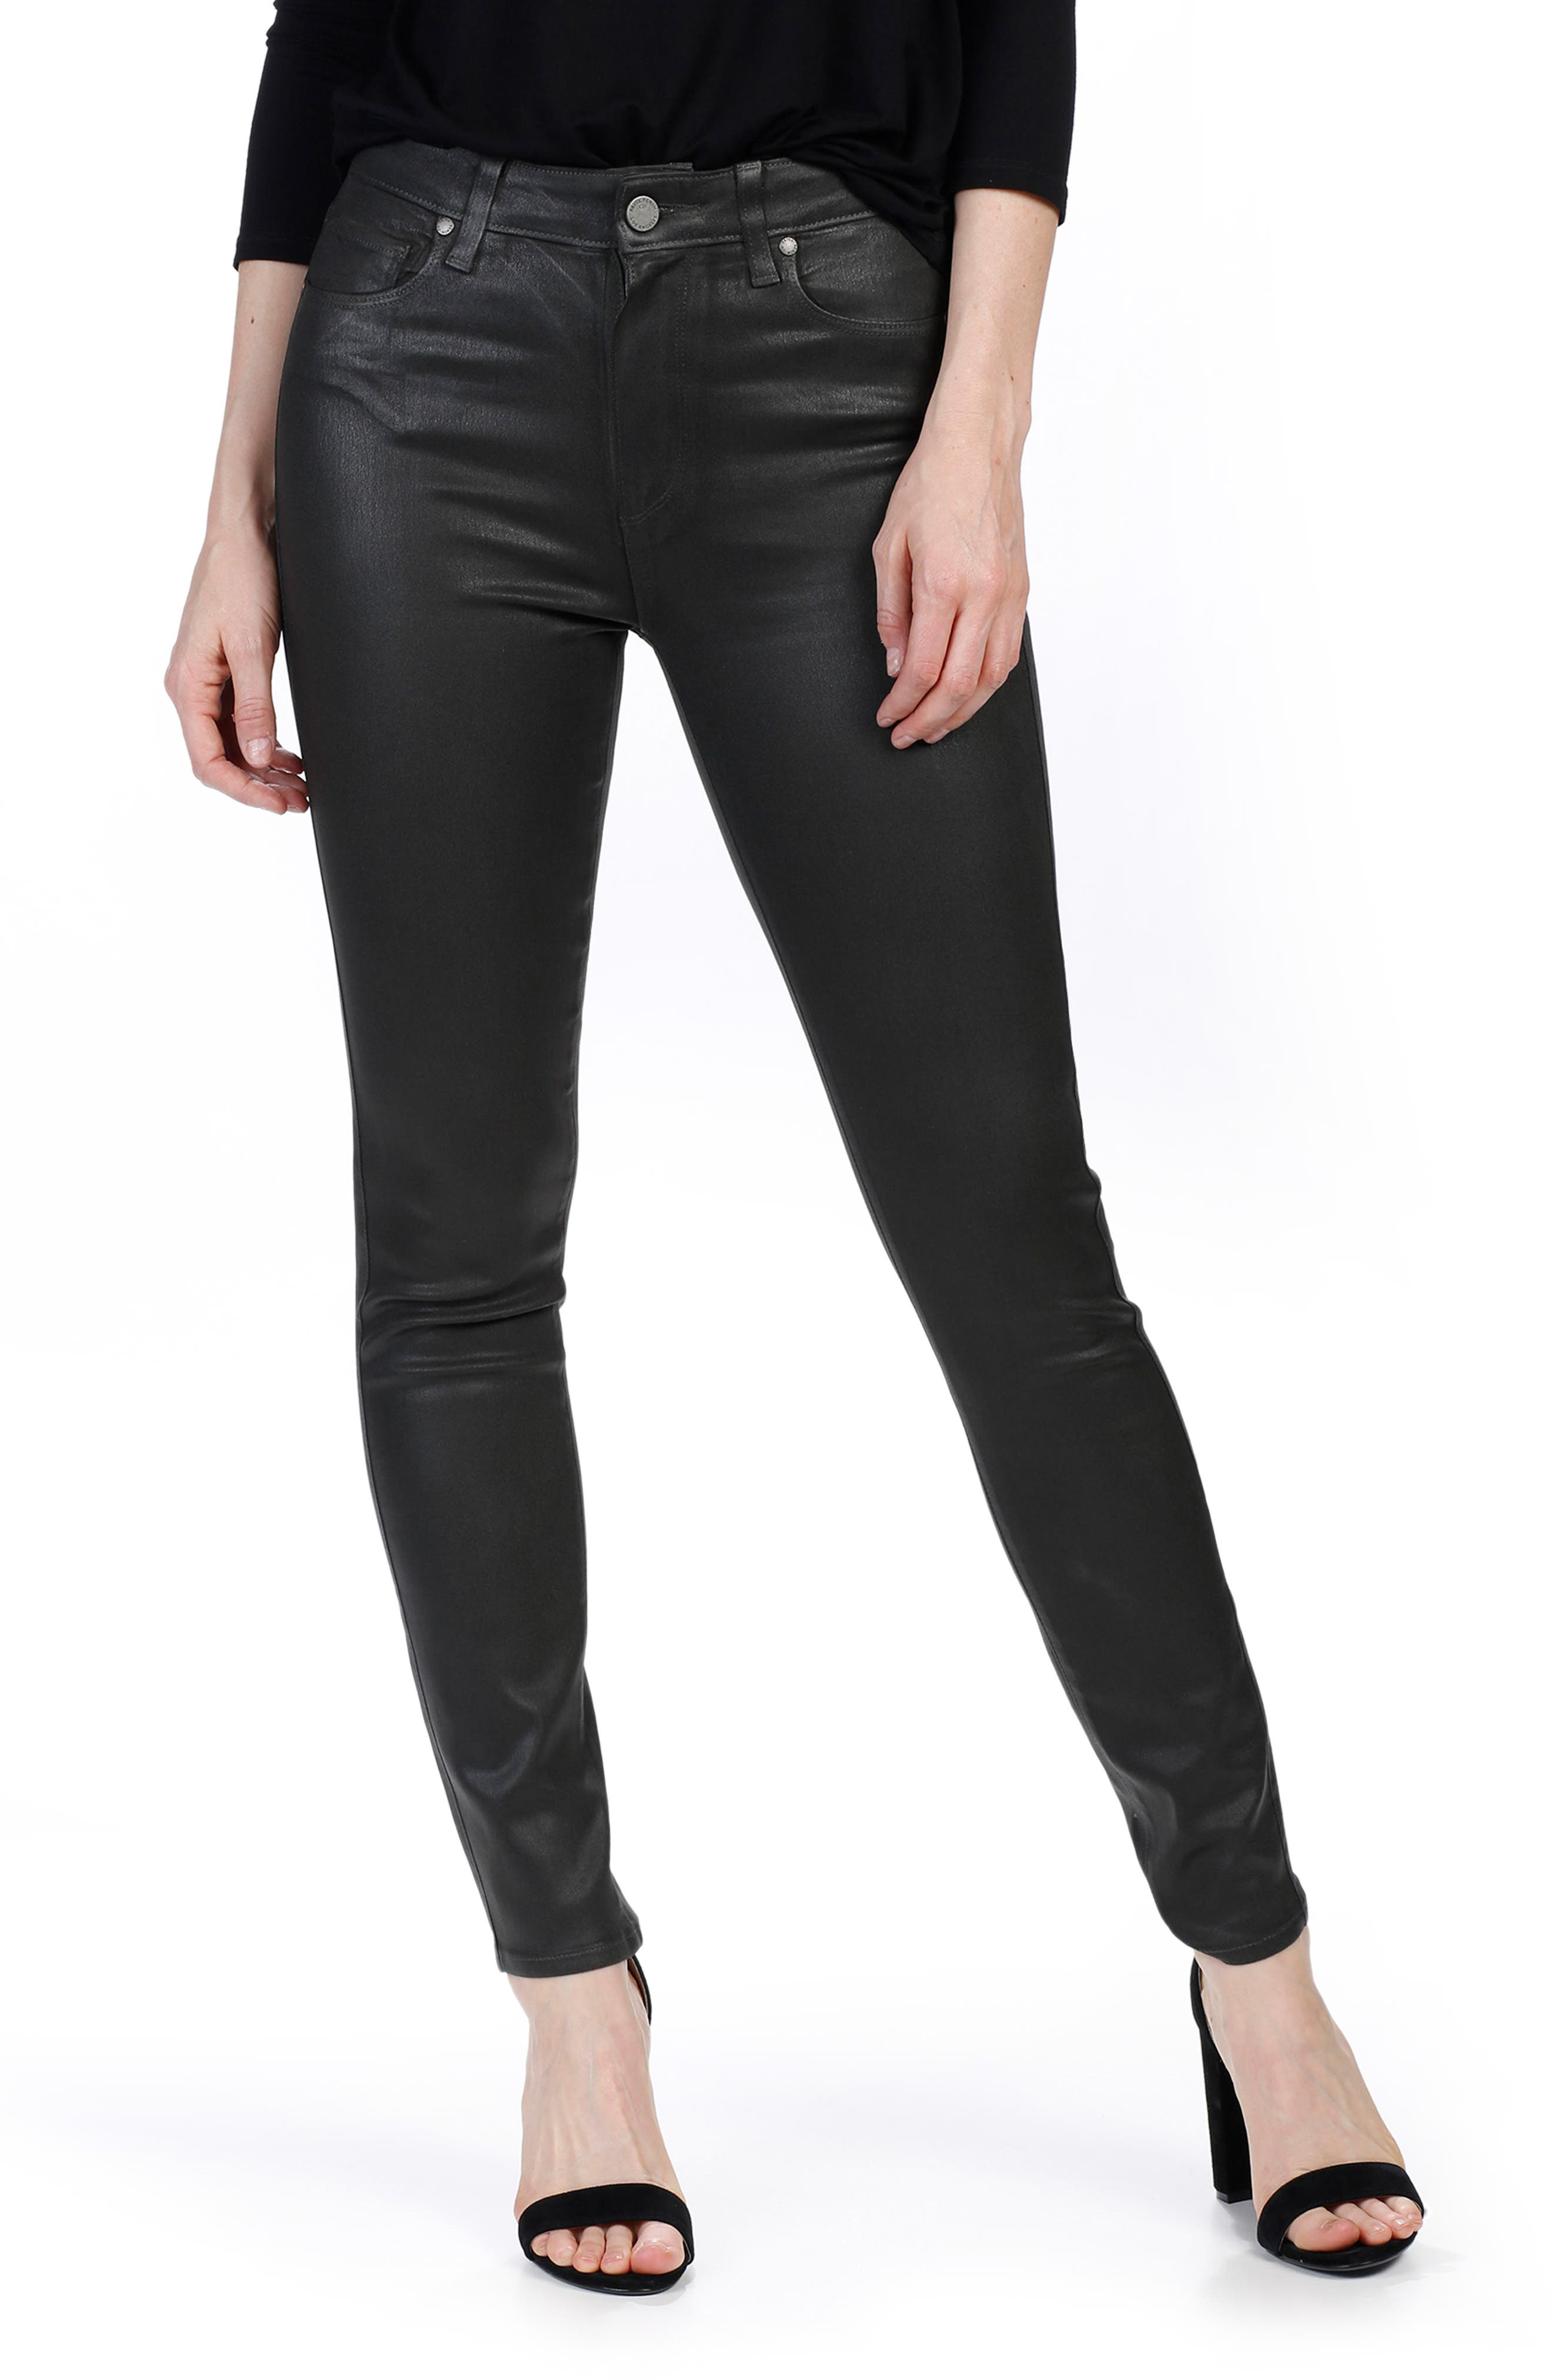 Transcend - Hoxton Coated High Waist Ankle Skinny Jeans,                             Alternate thumbnail 3, color,                             Deep Juniper Luxe Coating